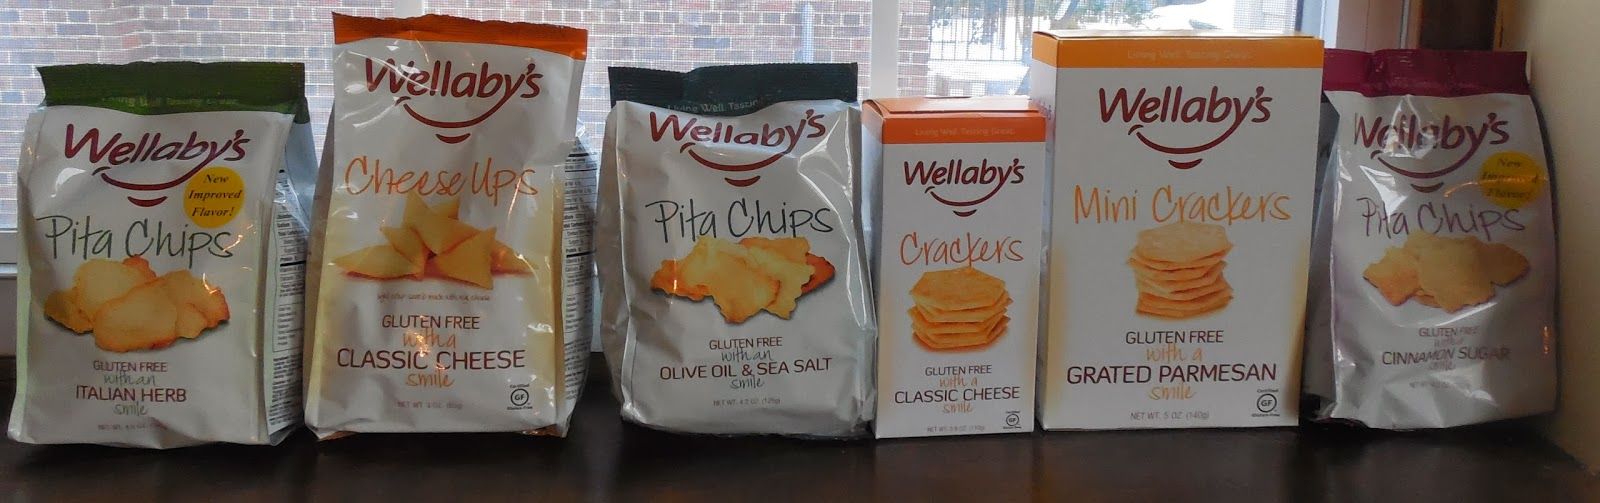 Wellaby's gluten free